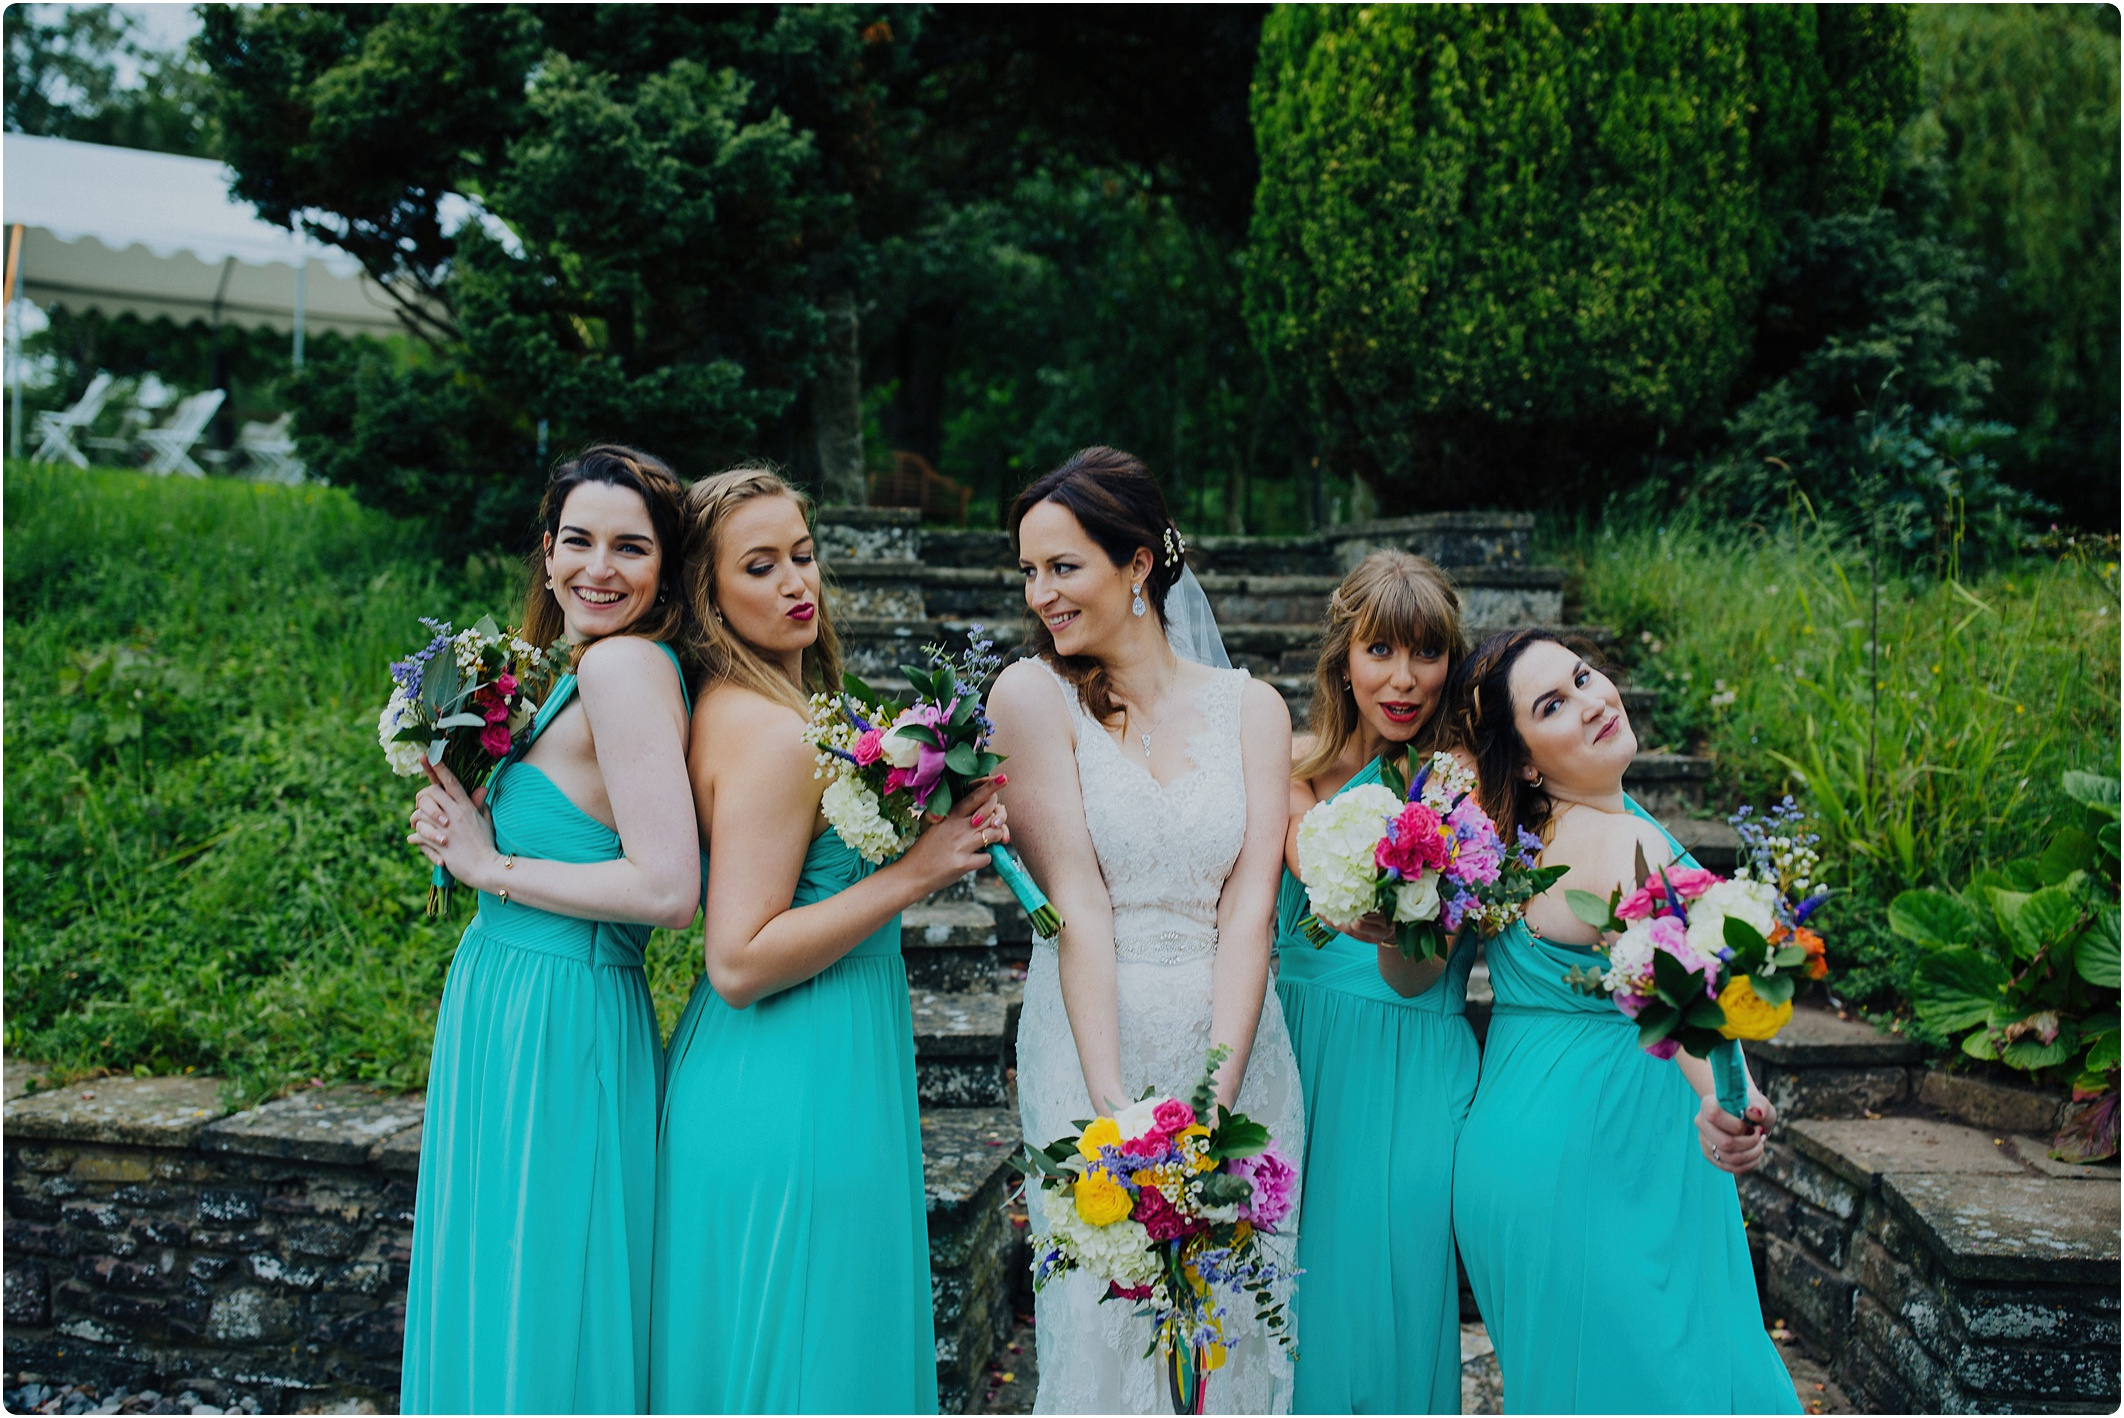 Treadam Barn Wedding bridesmaids